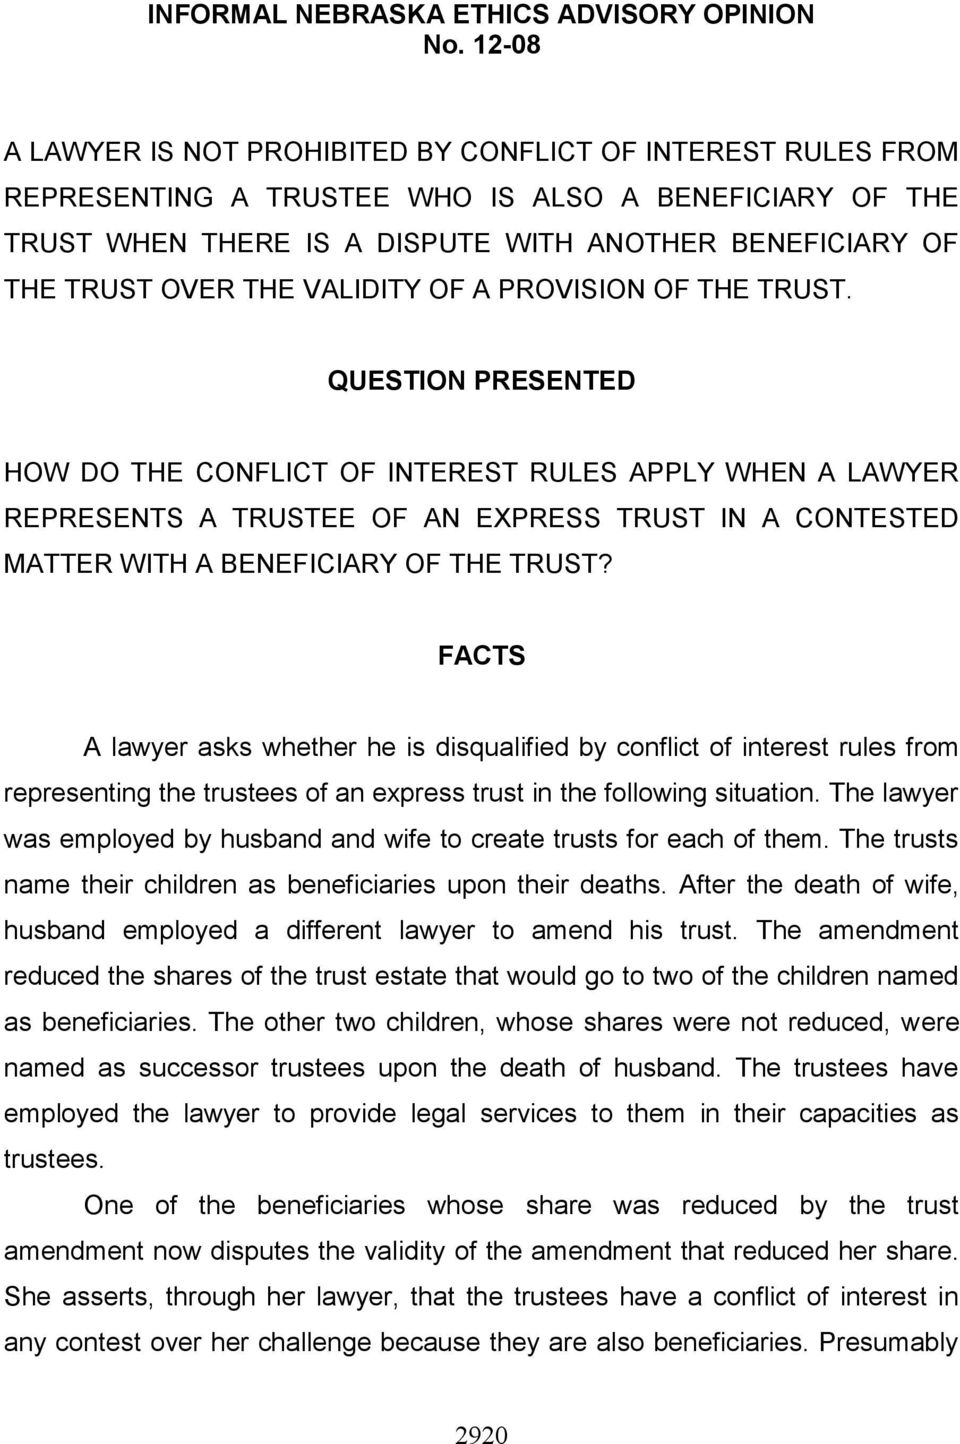 THE VALIDITY OF A PROVISION OF THE TRUST.